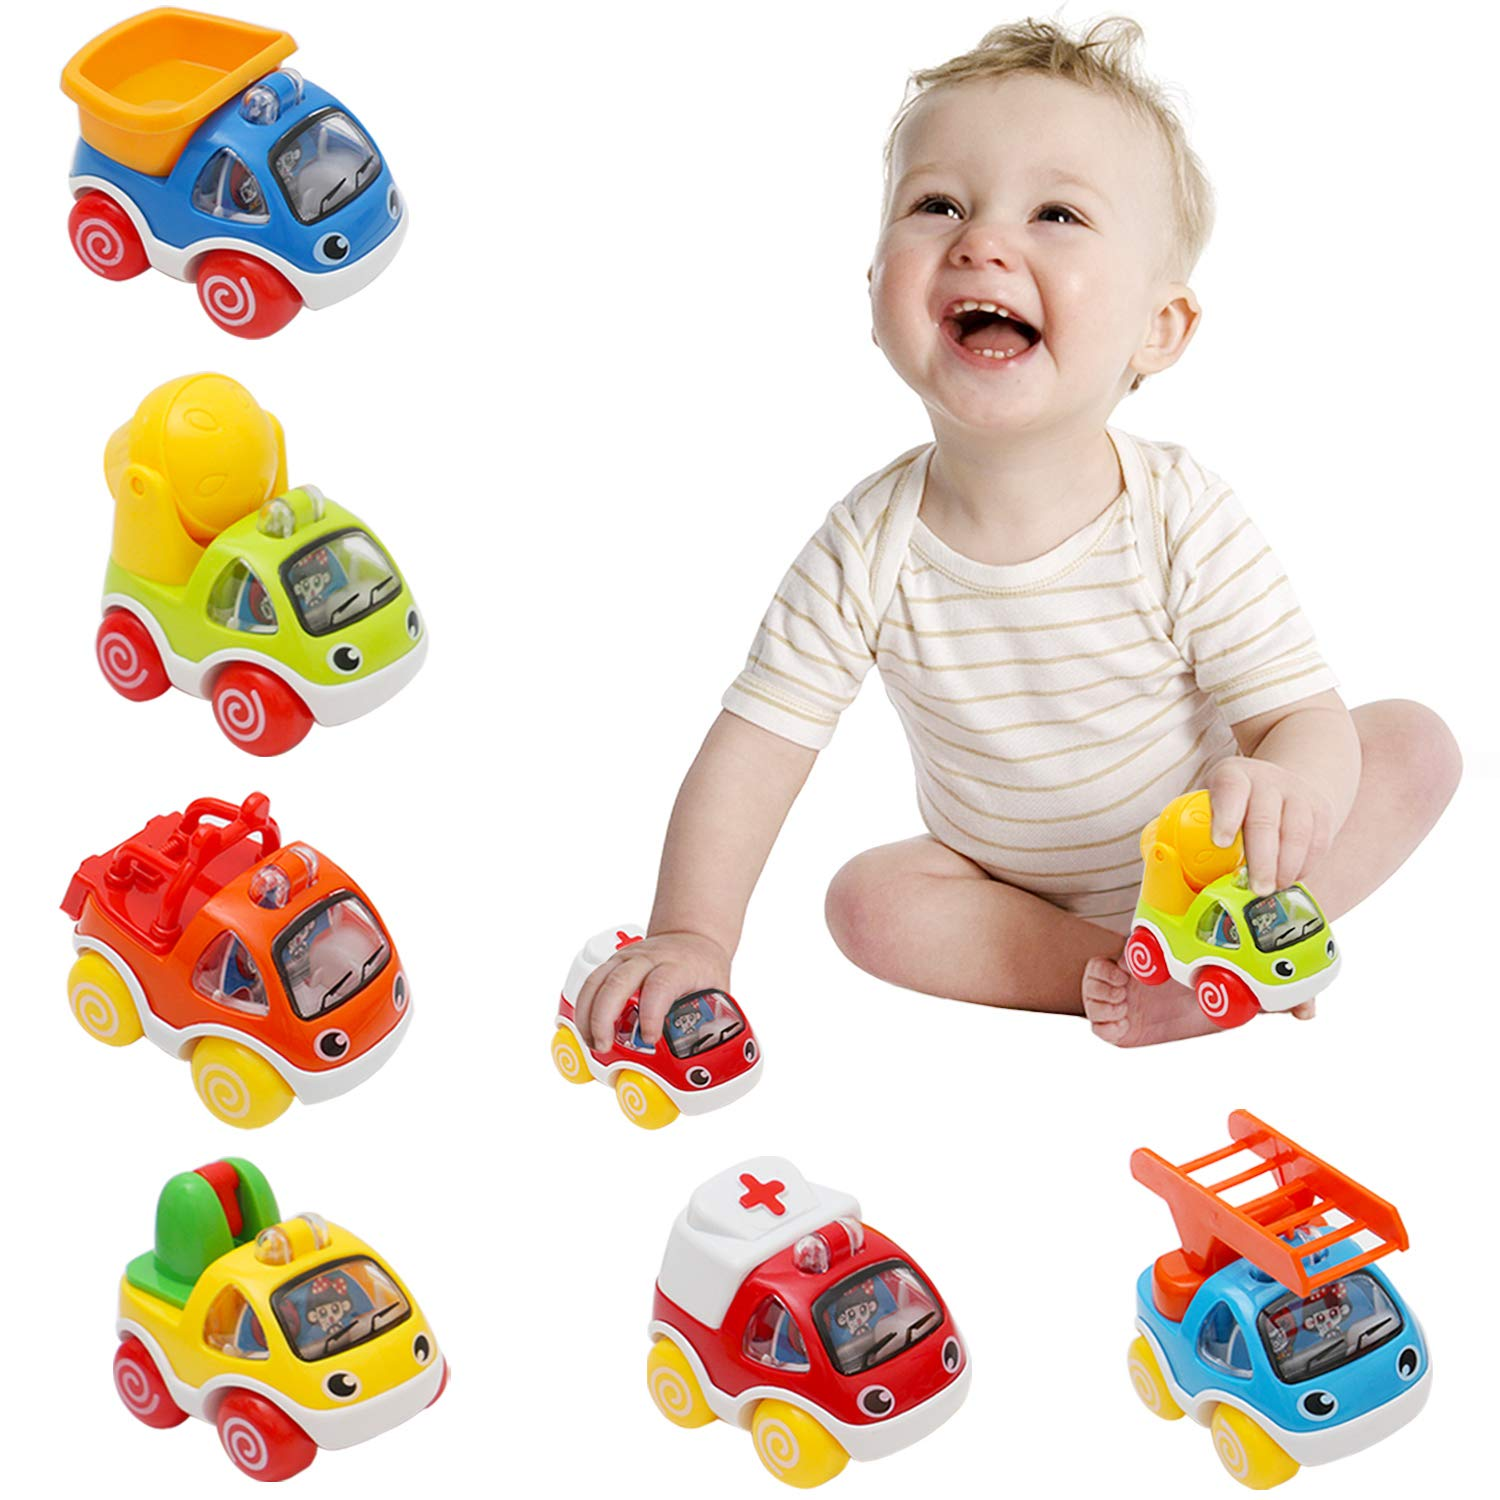 BeOne Toy Cars for Kids, Pull Back Cars Push and GO Cars Toys for Toddlers 1 Year and Up Baby Construction Team Vehicles Set Toy Helicopter for Toddlers Birthday (6pcs Construction Cars)